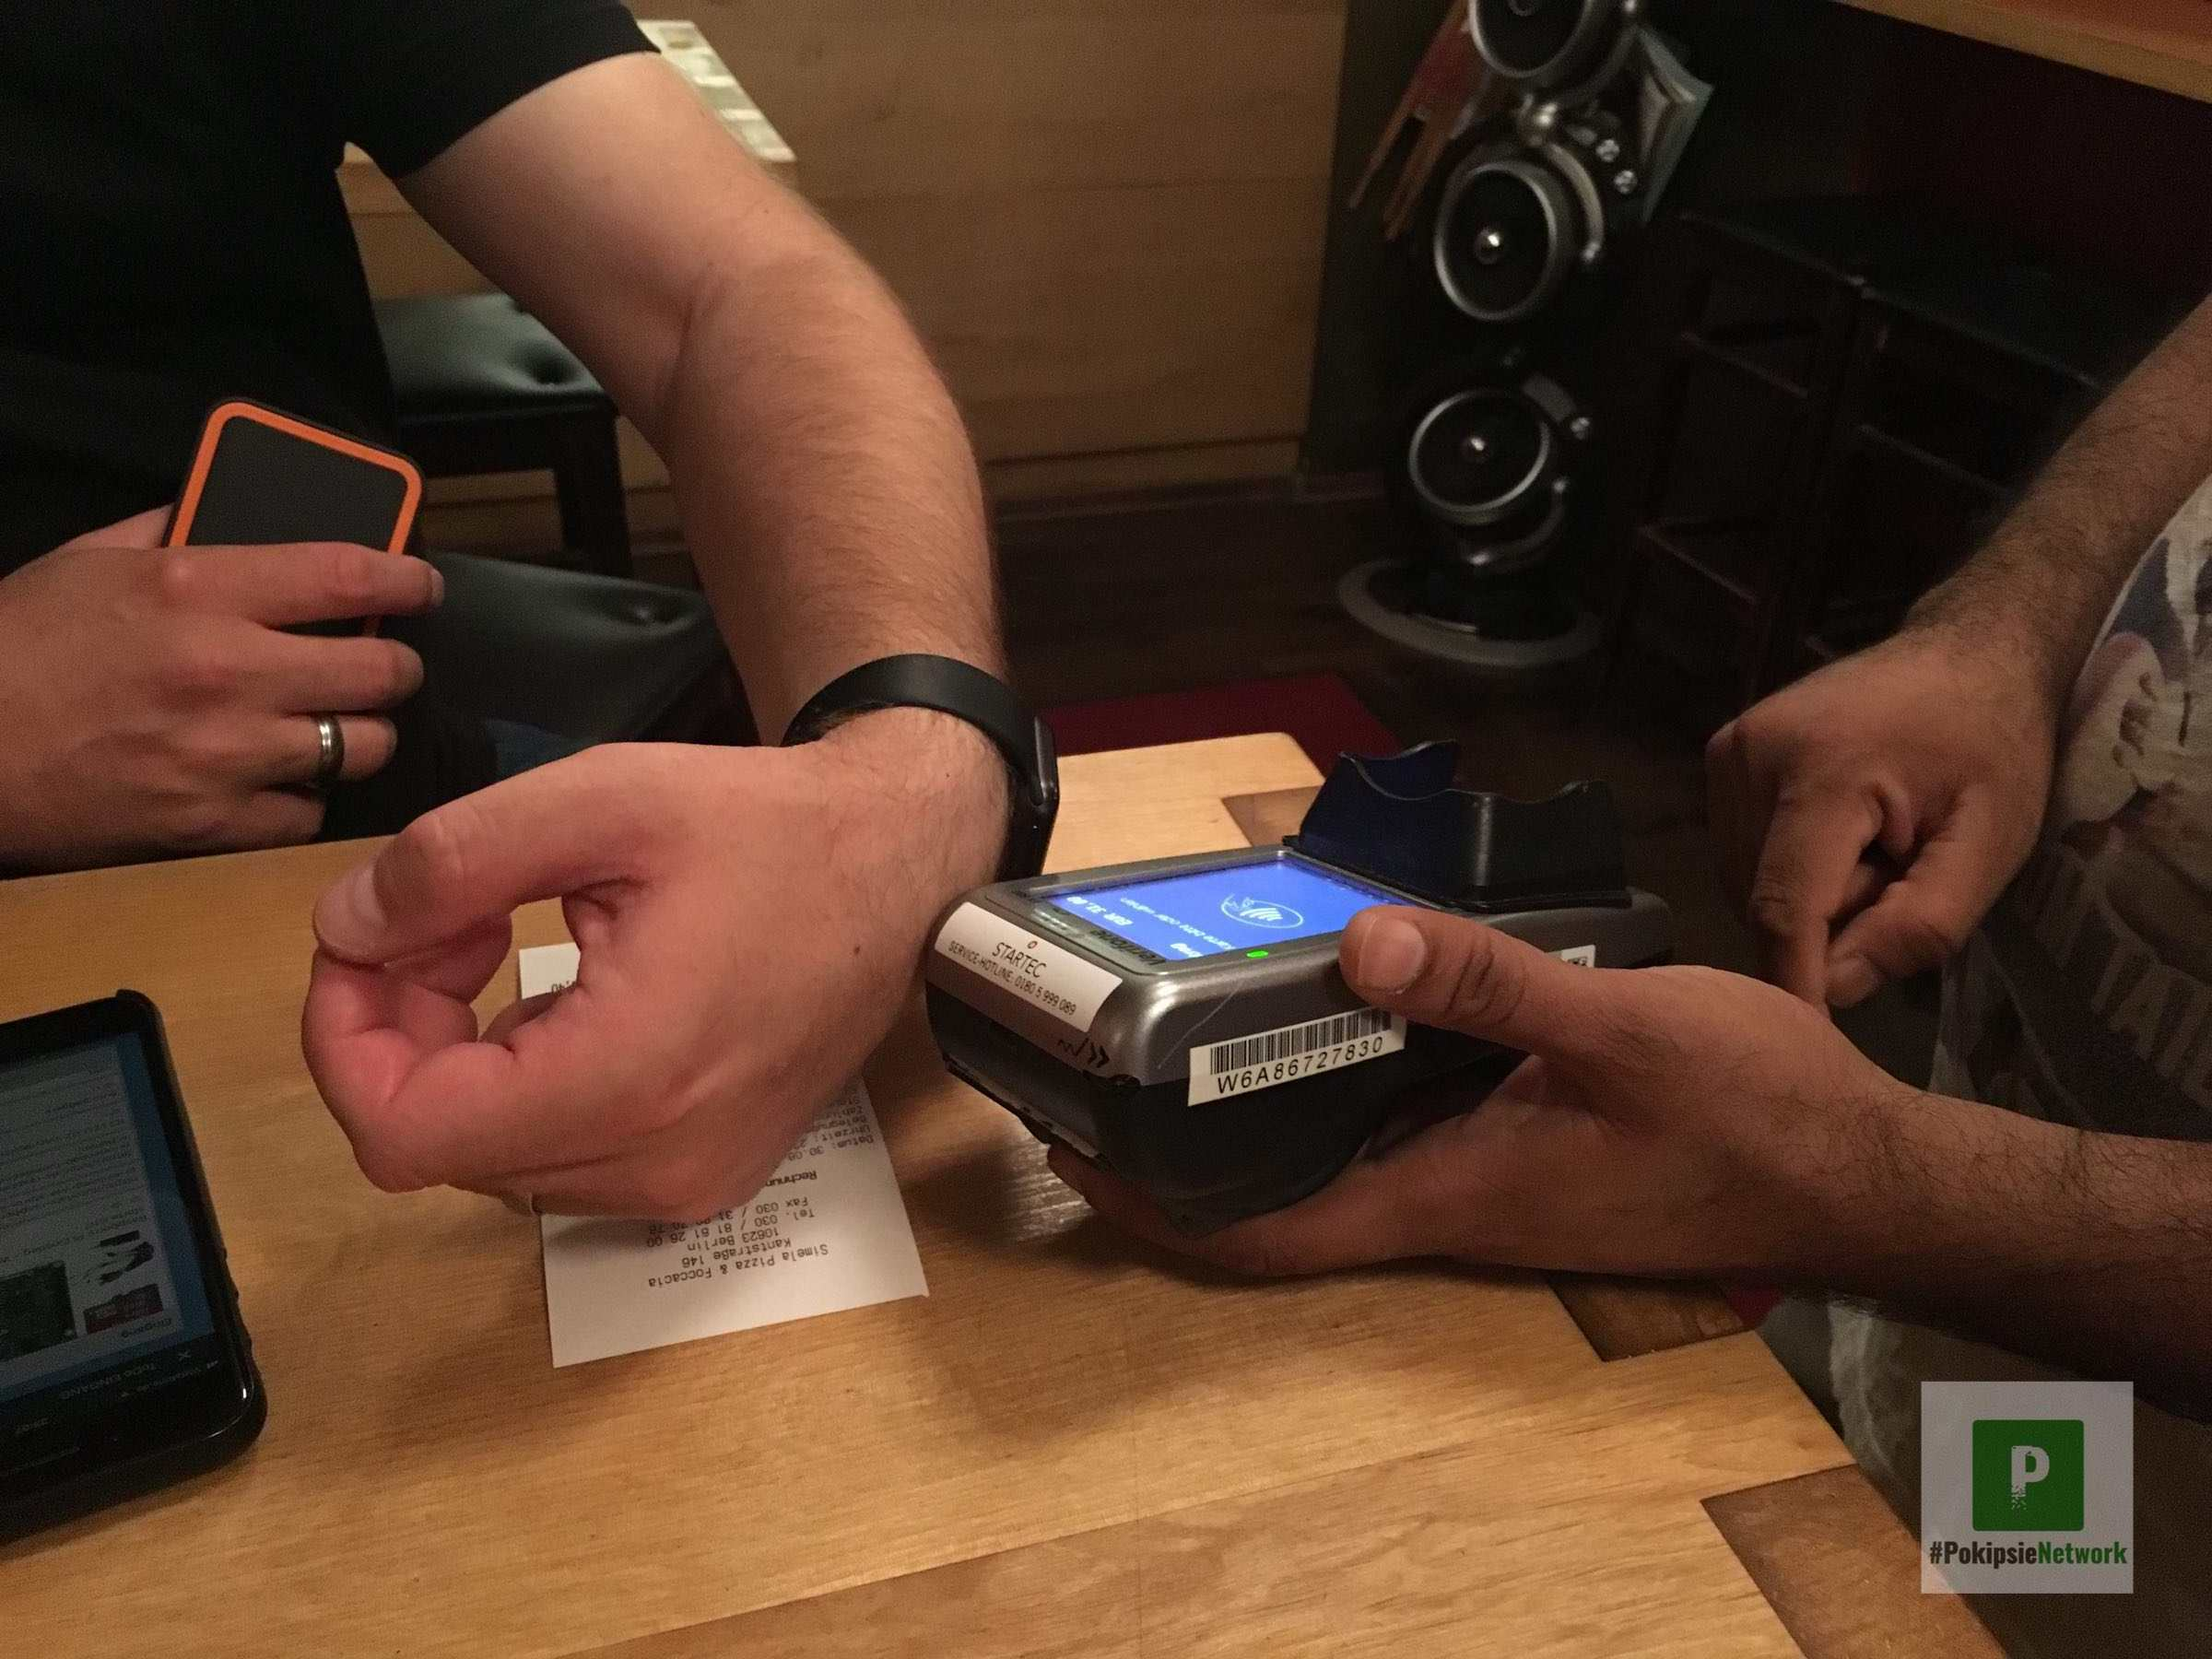 Bargeldlos bezahlen mit der Apple Watch in Berlin